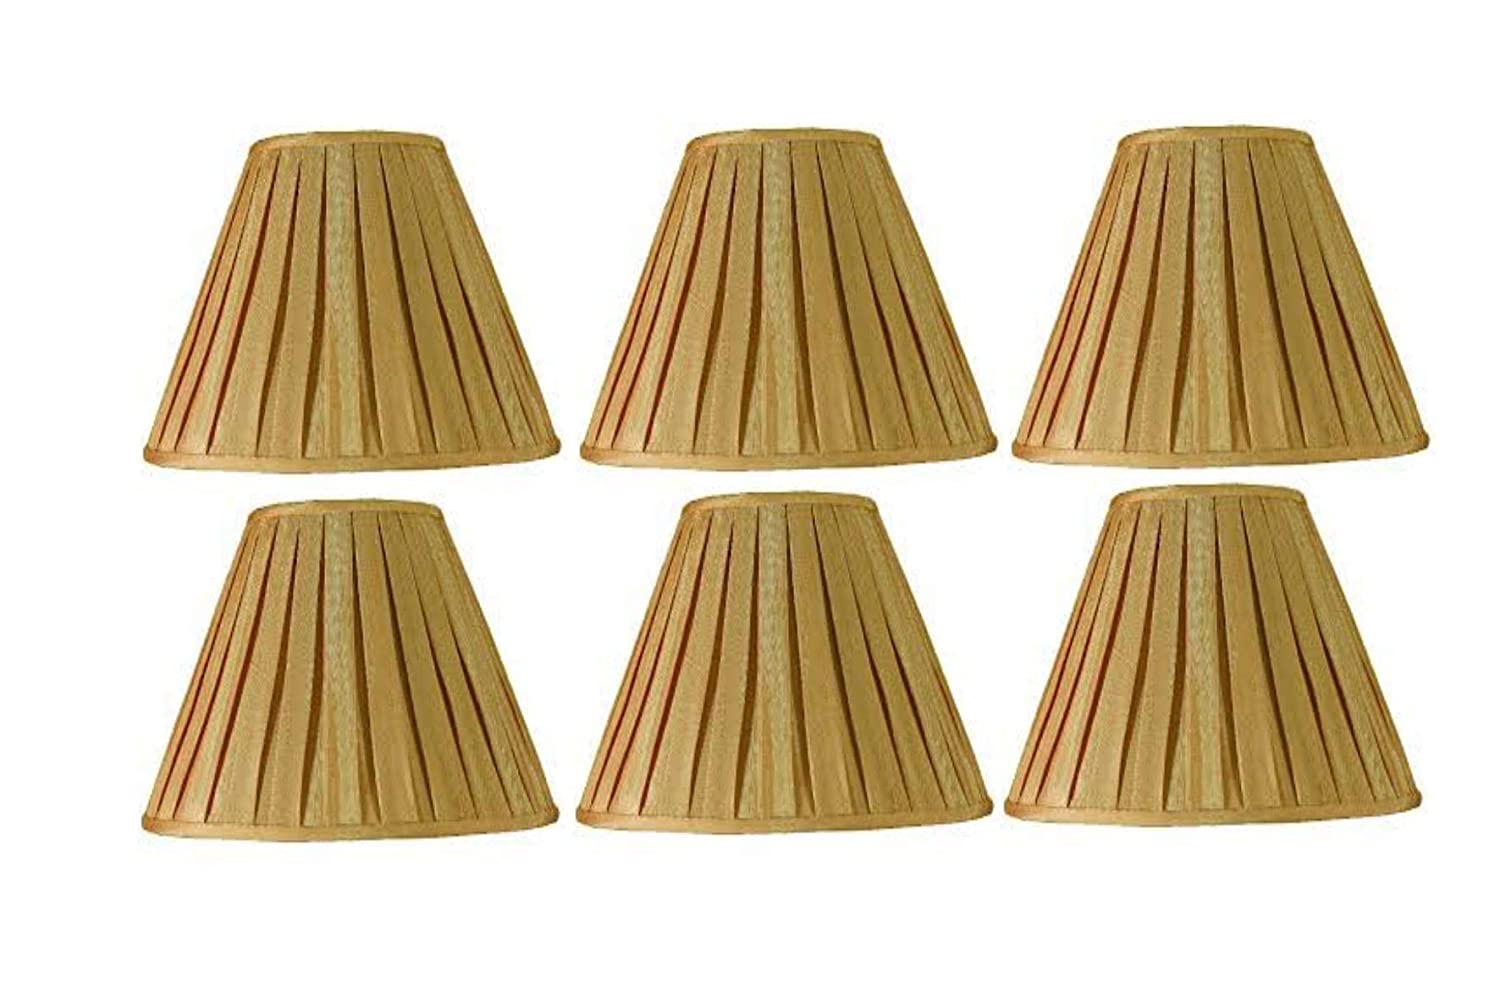 Set of Six Upgradelights 5 Inch Pleated Empire Clip On Chandelier Lamp Shade in Khaki Silk 3.25x5x4